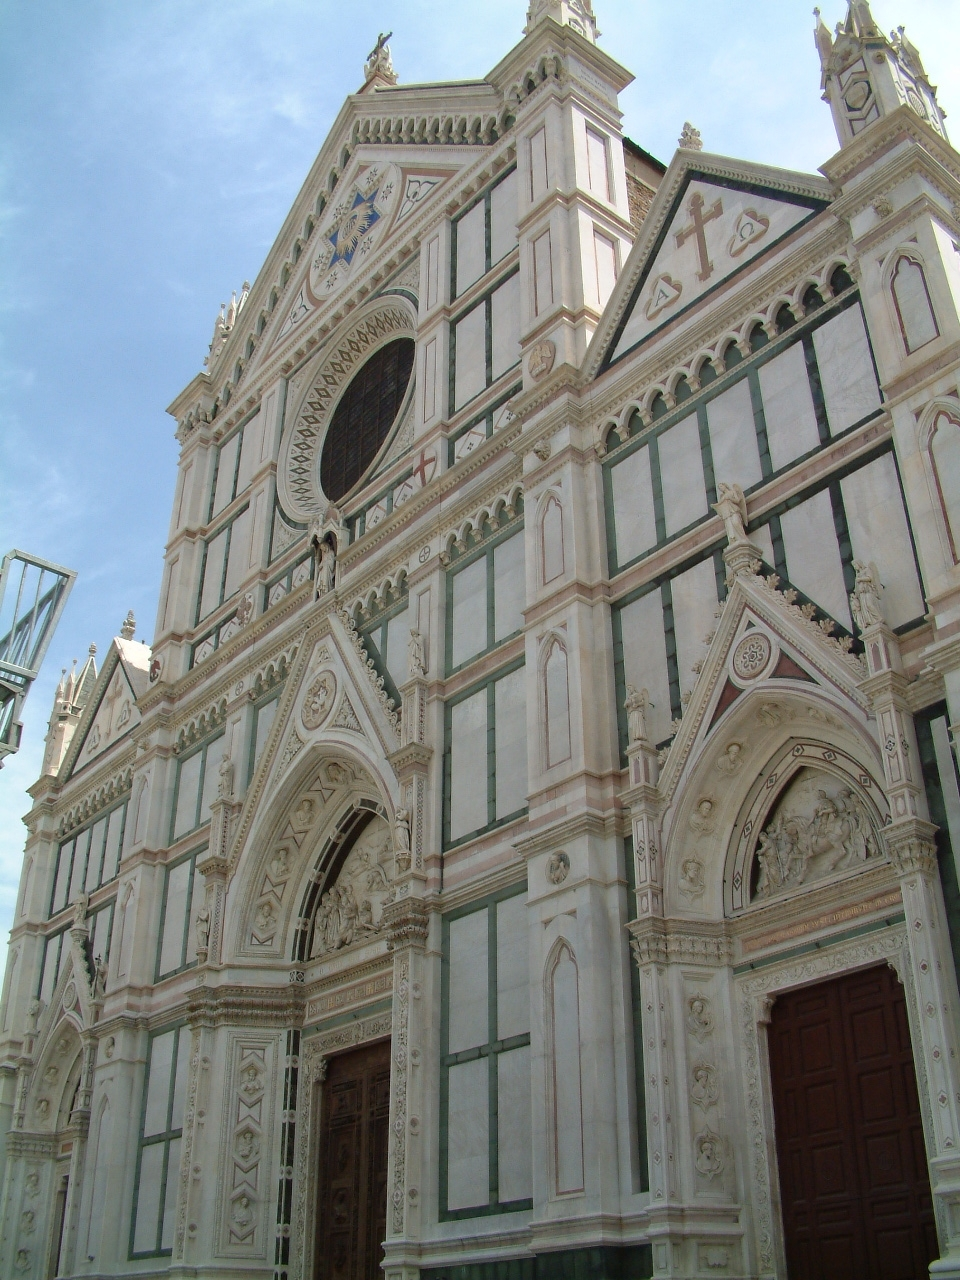 Basilica Santa Croce - Beautiful facade